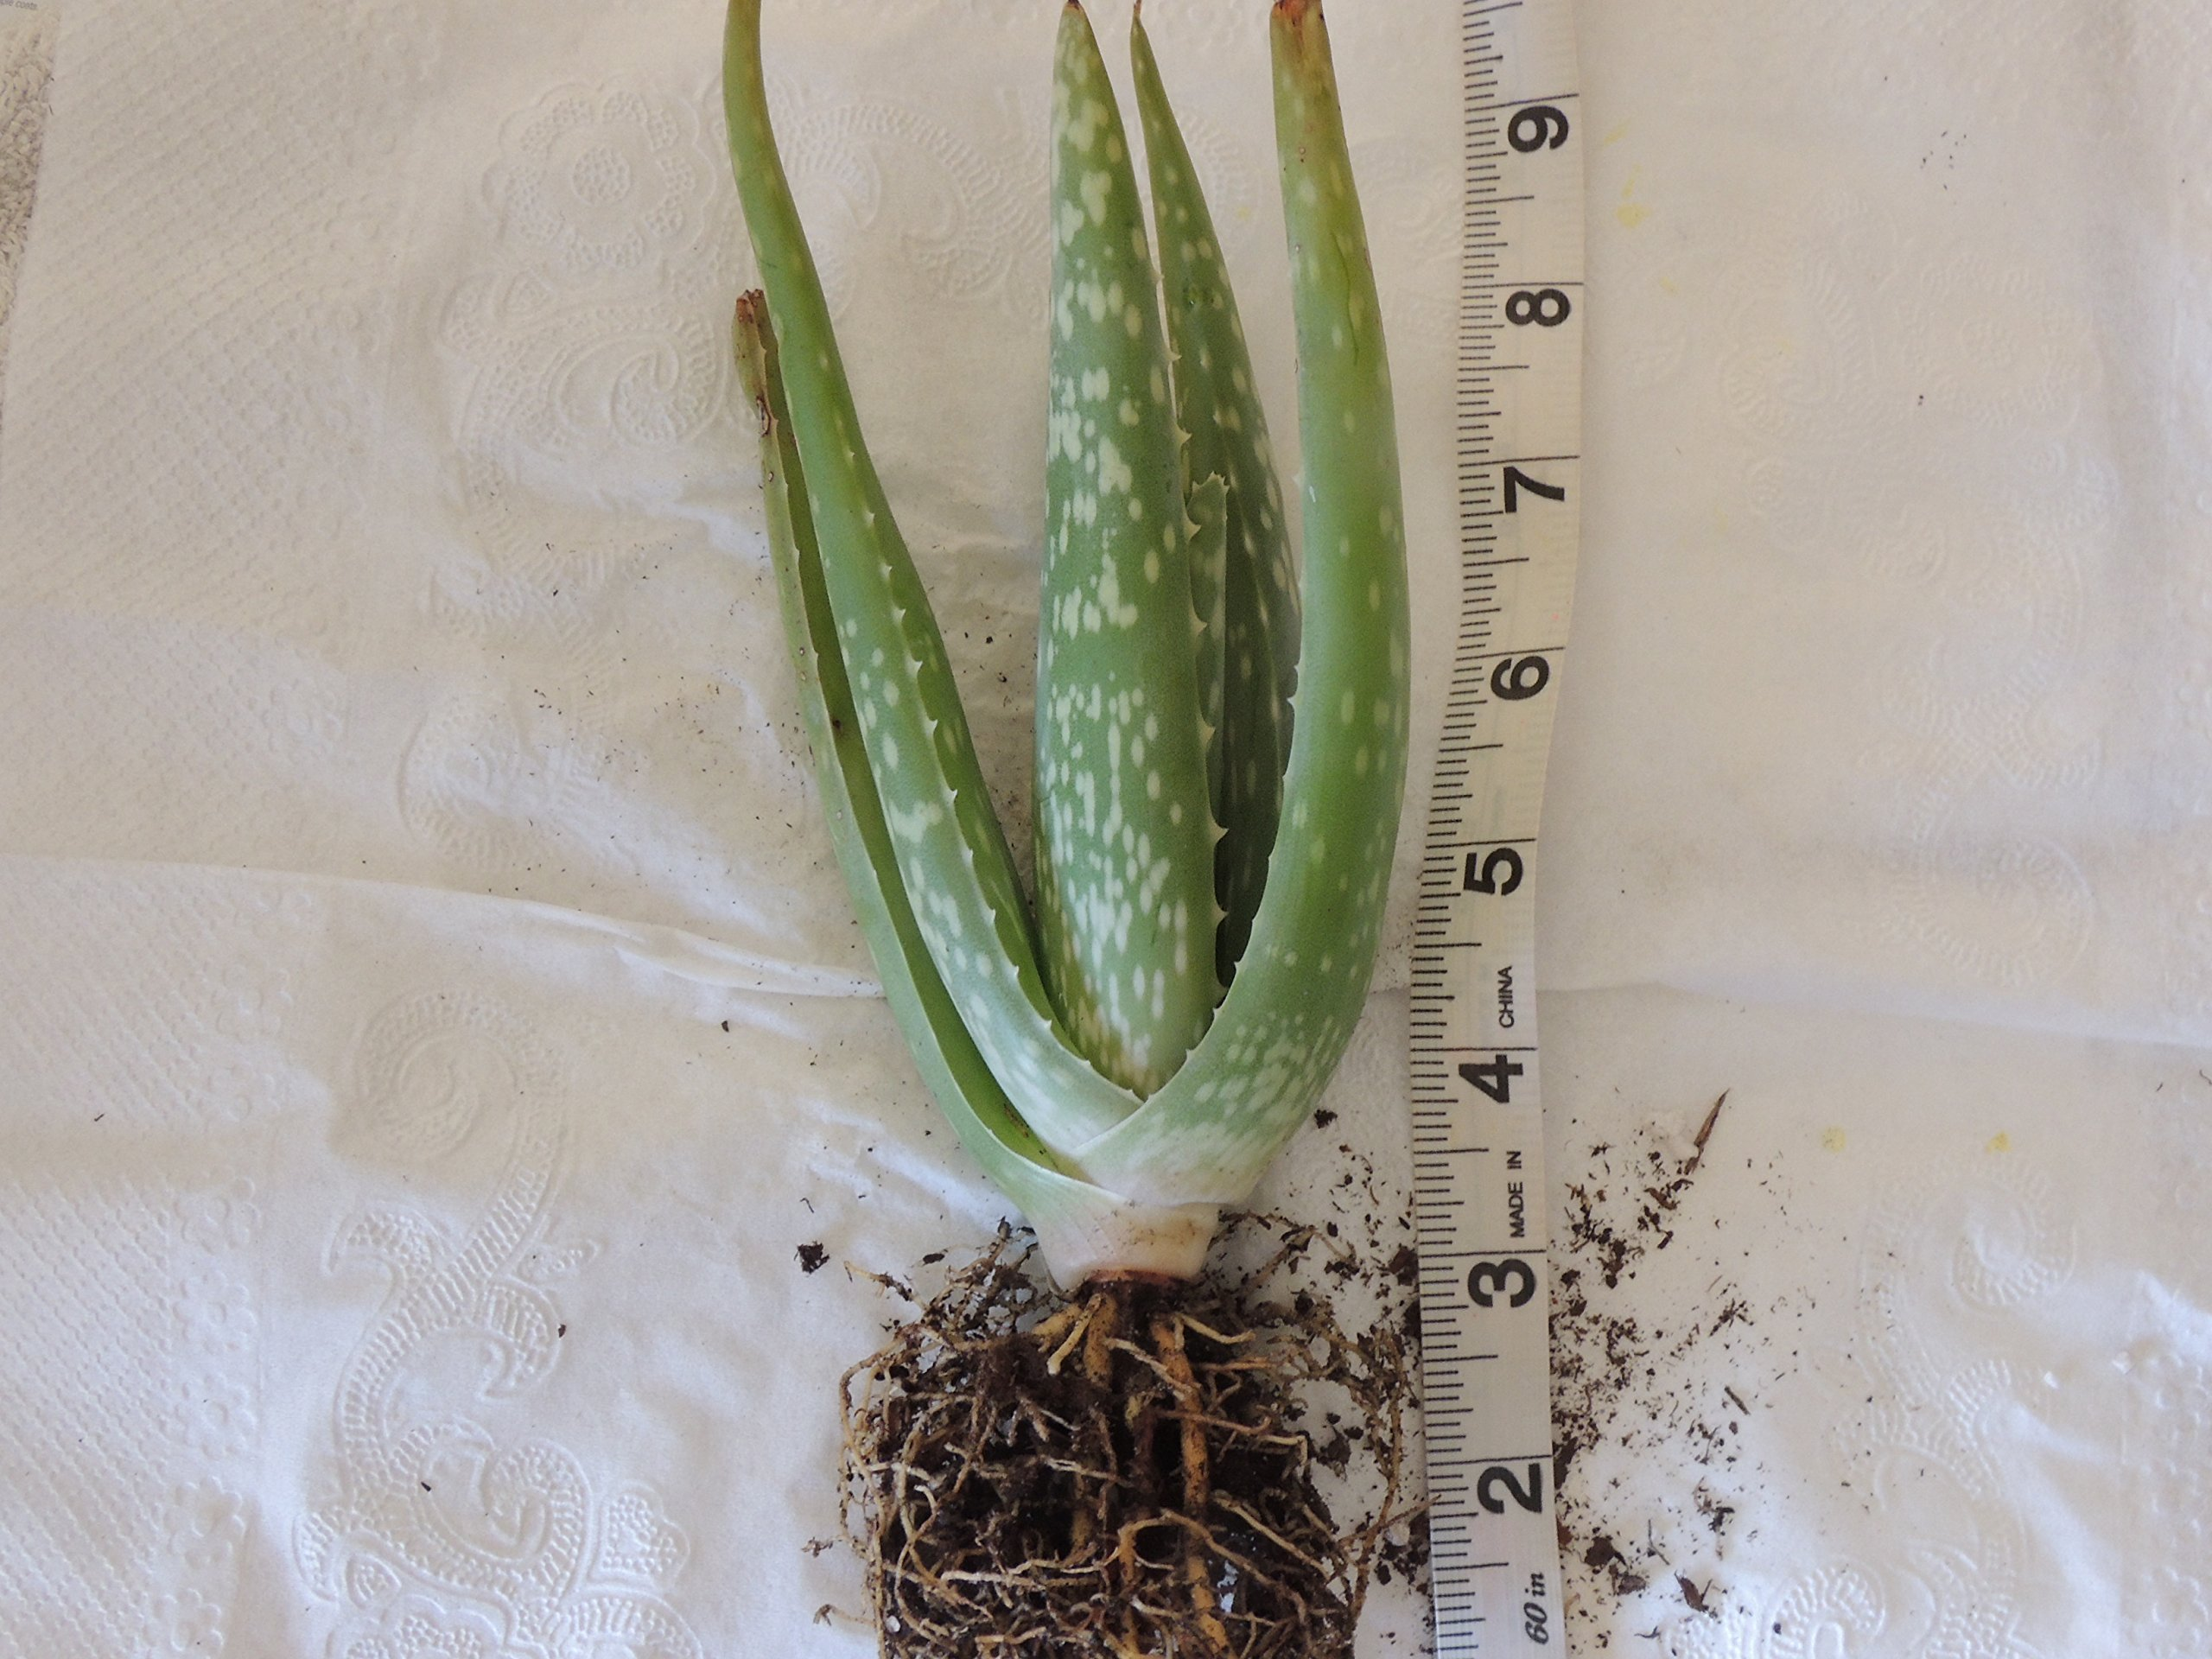 Two Healthy Strong Aloe Vera Plants 10-12 Inches Tall by Artistic Solutions (Image #1)